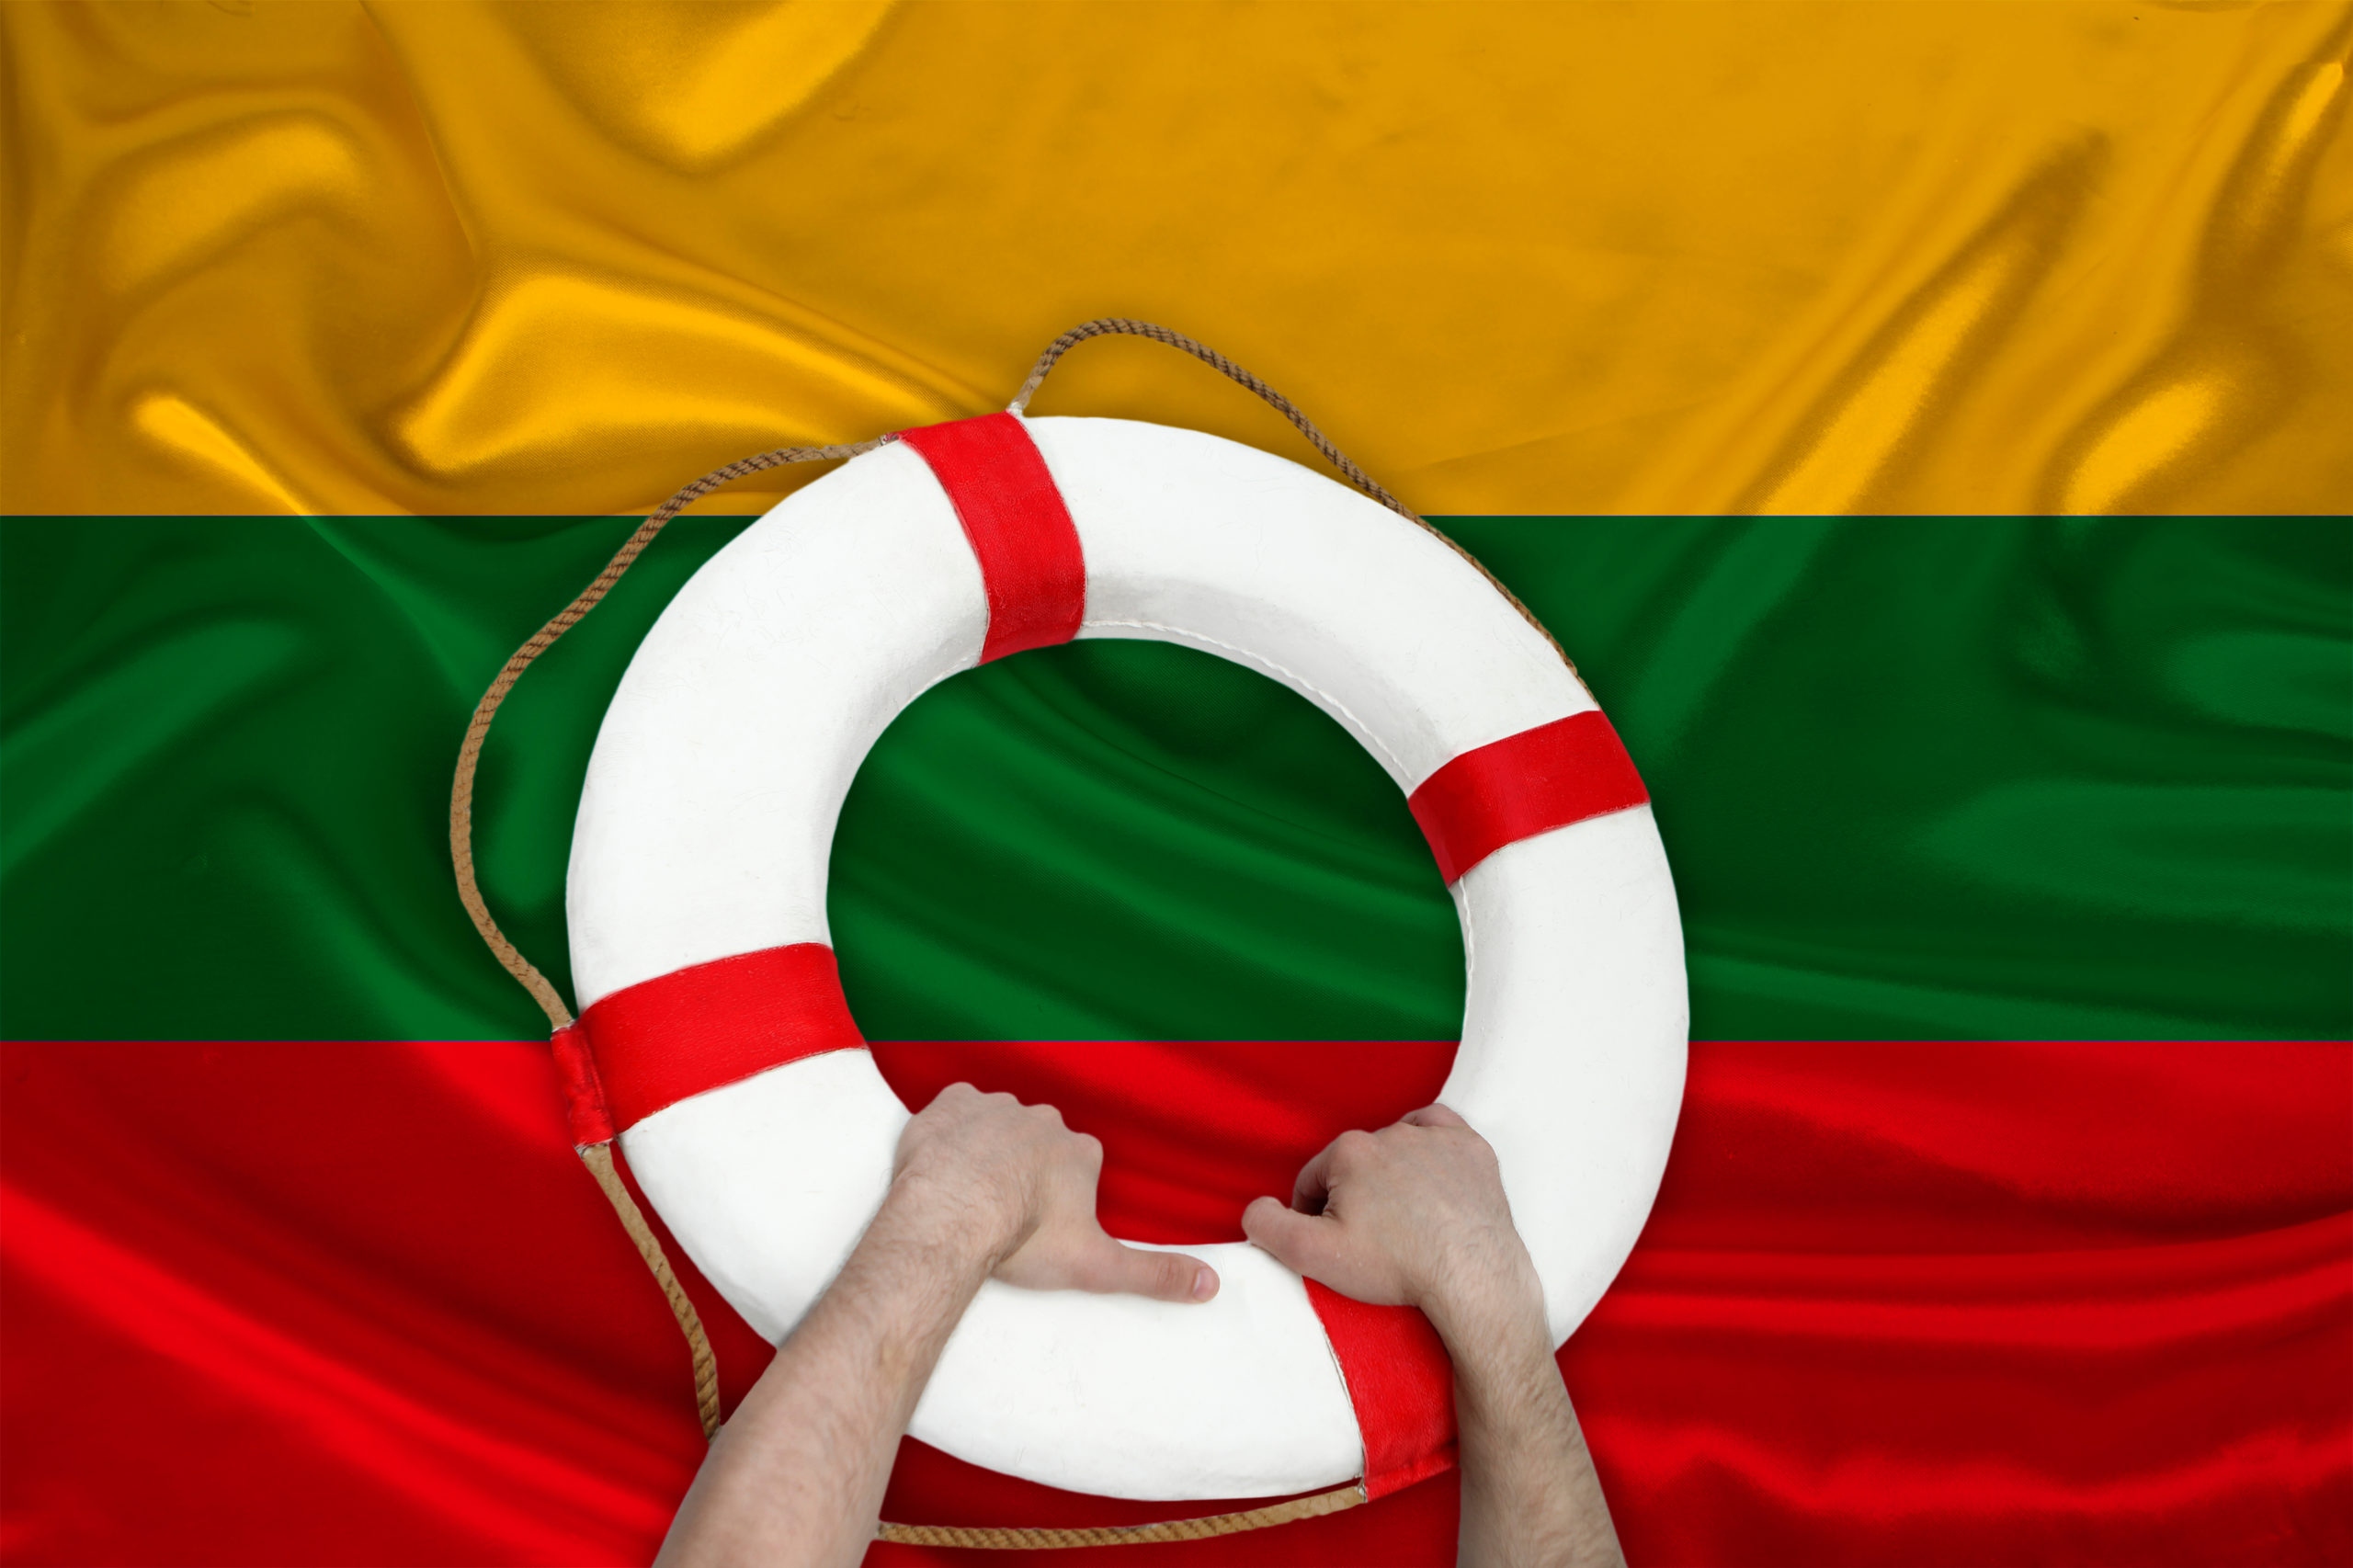 Elections in Lithuania: an anti-populist turn?